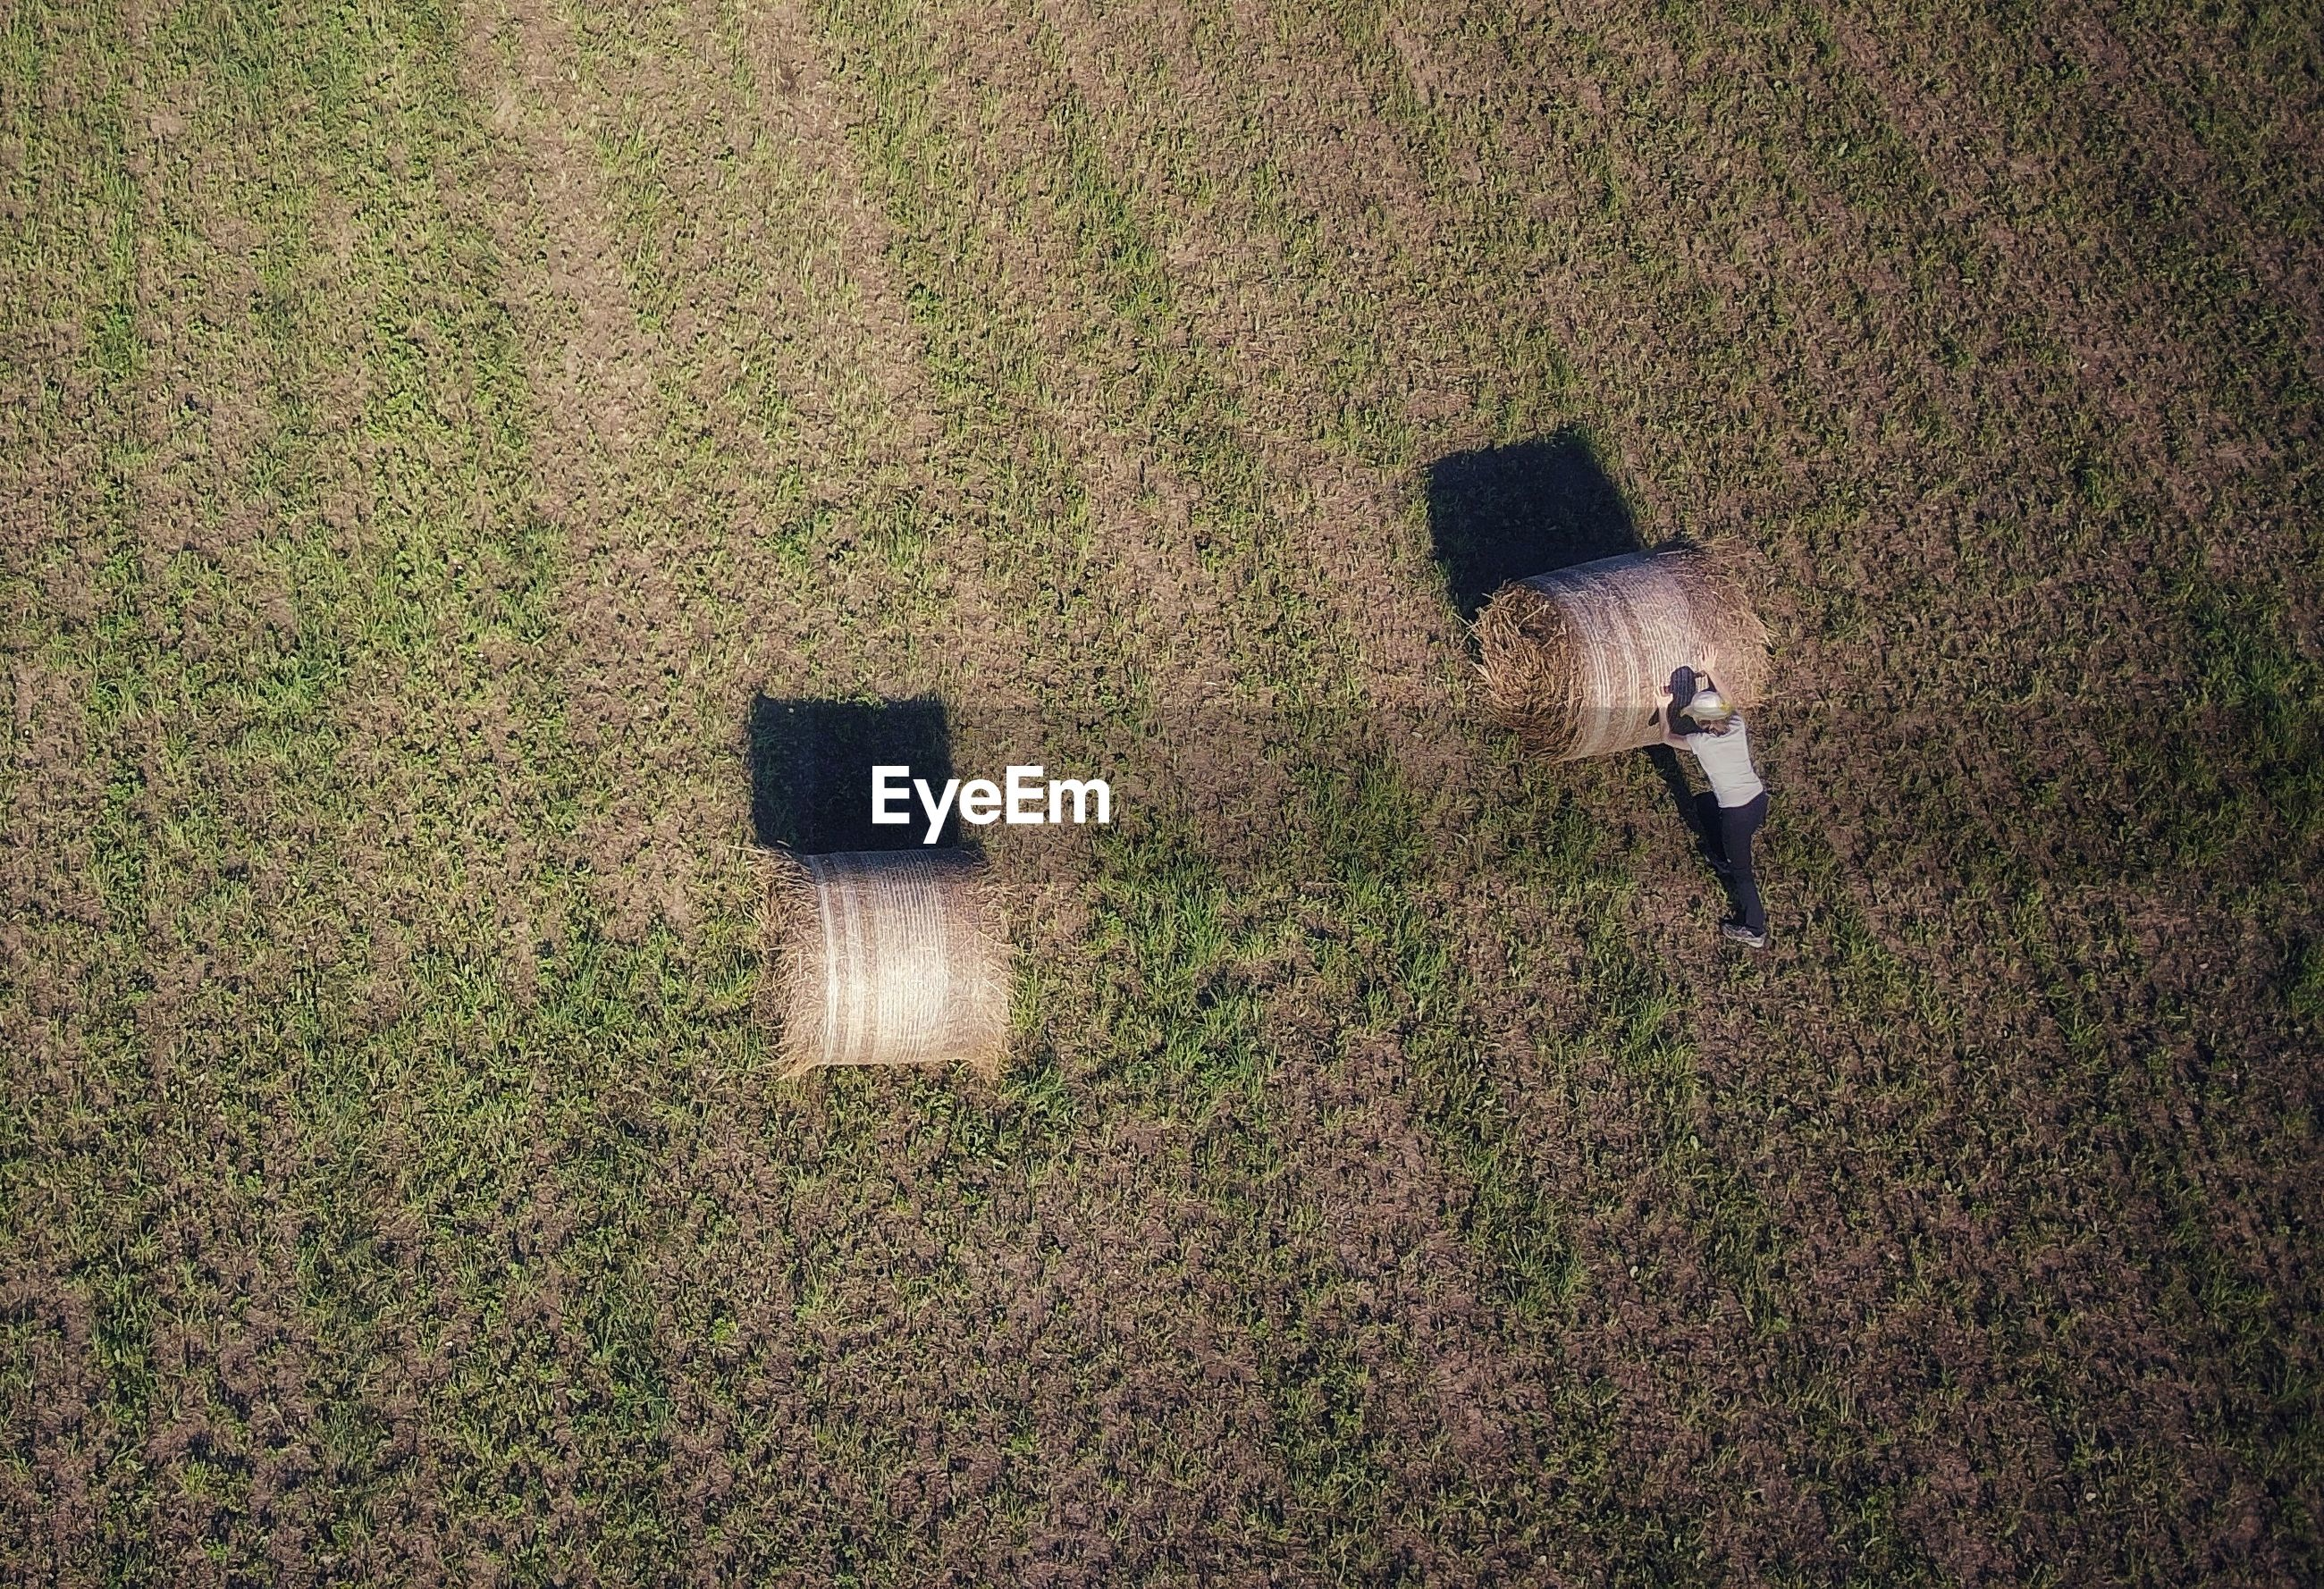 High angle view of man and hay bale on field